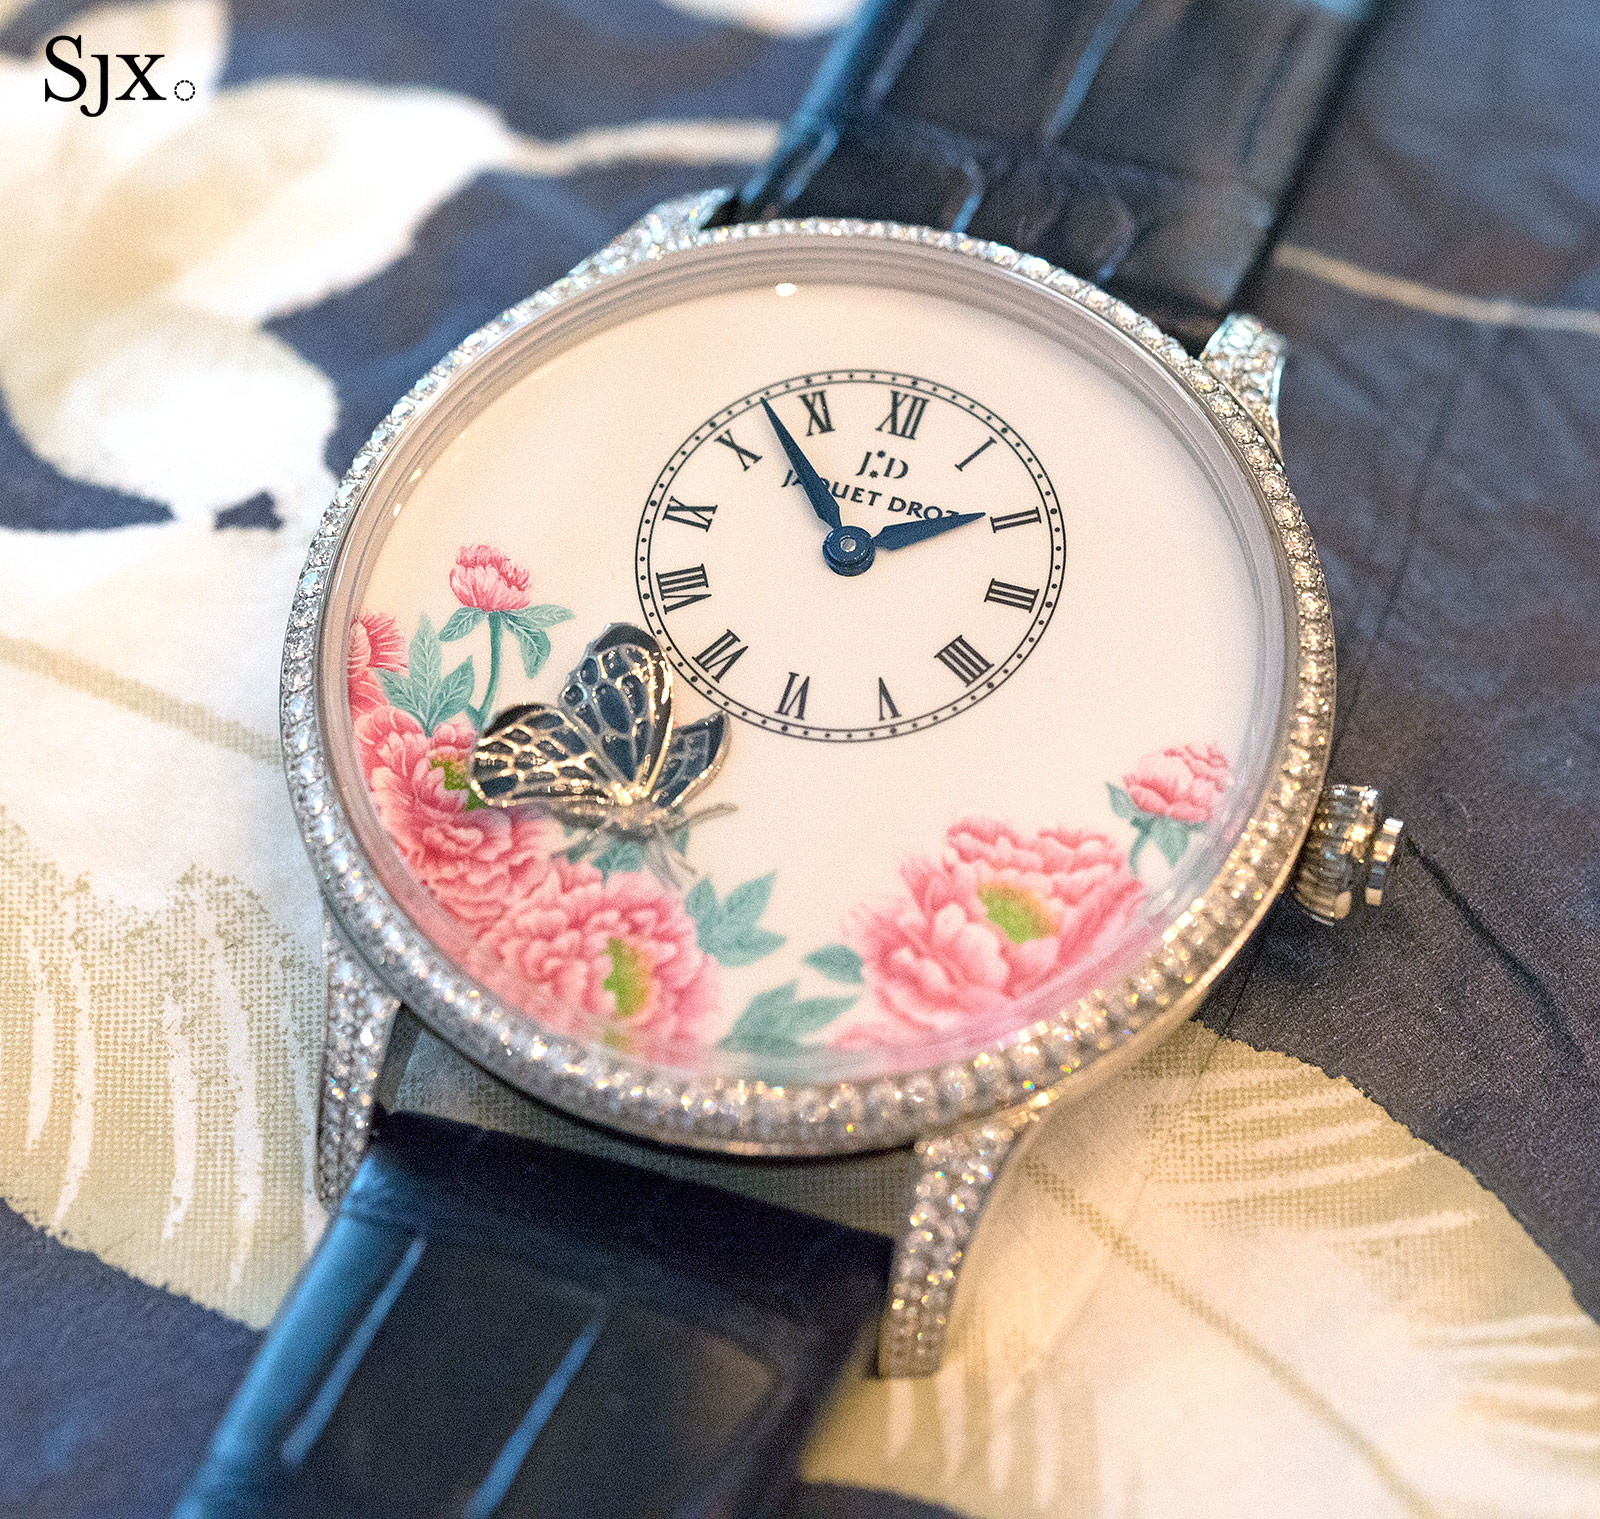 Jaquet Droz Petite Heure Minute The Butterfly Journey 7